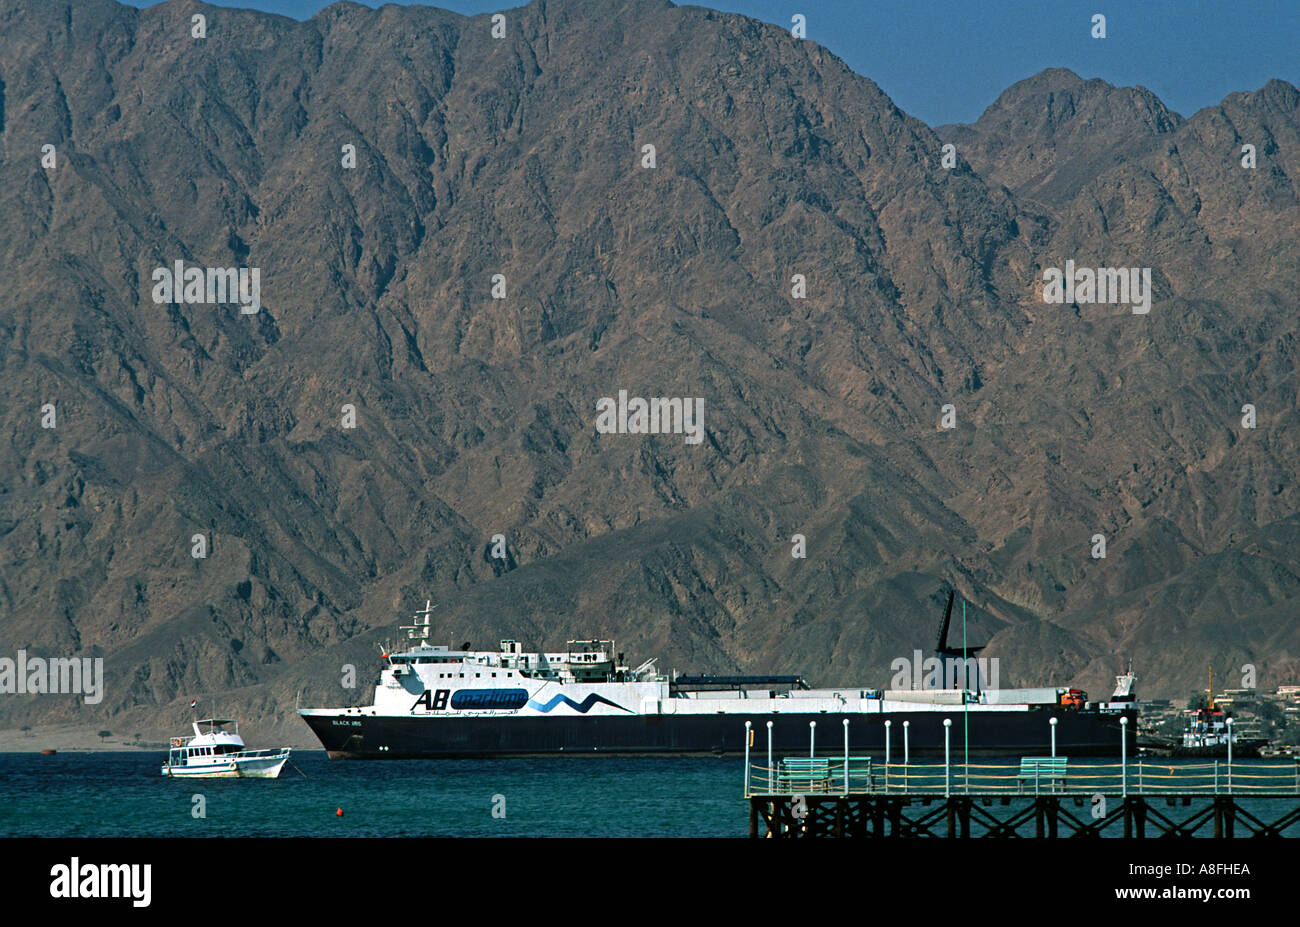 The ferry to Aqaba Jordan leaves twice daily from Nuweiba Red Sea coast at Nuweiba north of Sharm El Sheik Egypt Stock Photo